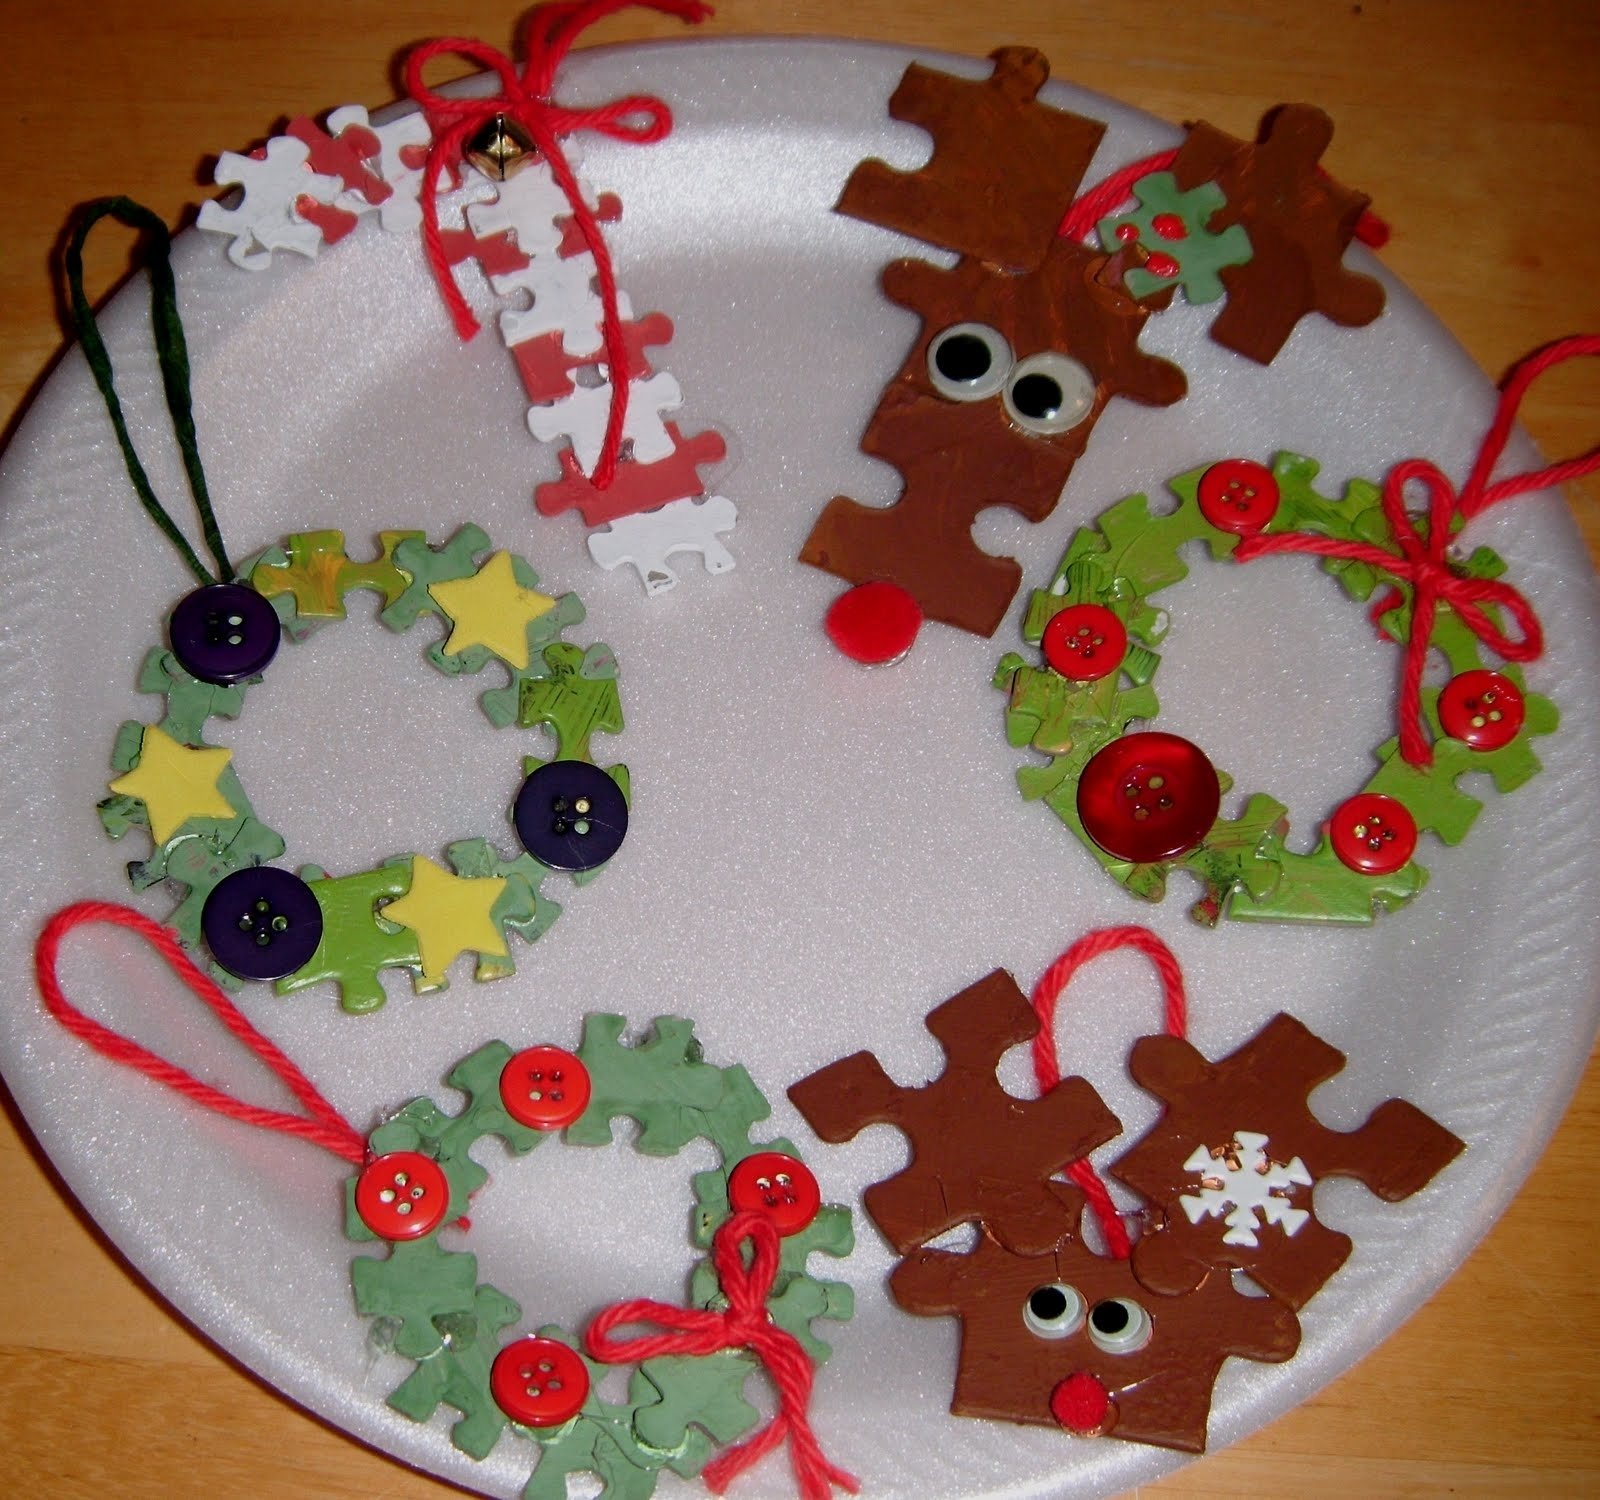 10 Gorgeous Christmas Ornament Craft Ideas For Kids 7 easy diy homemade christmas ornaments for kids 2020